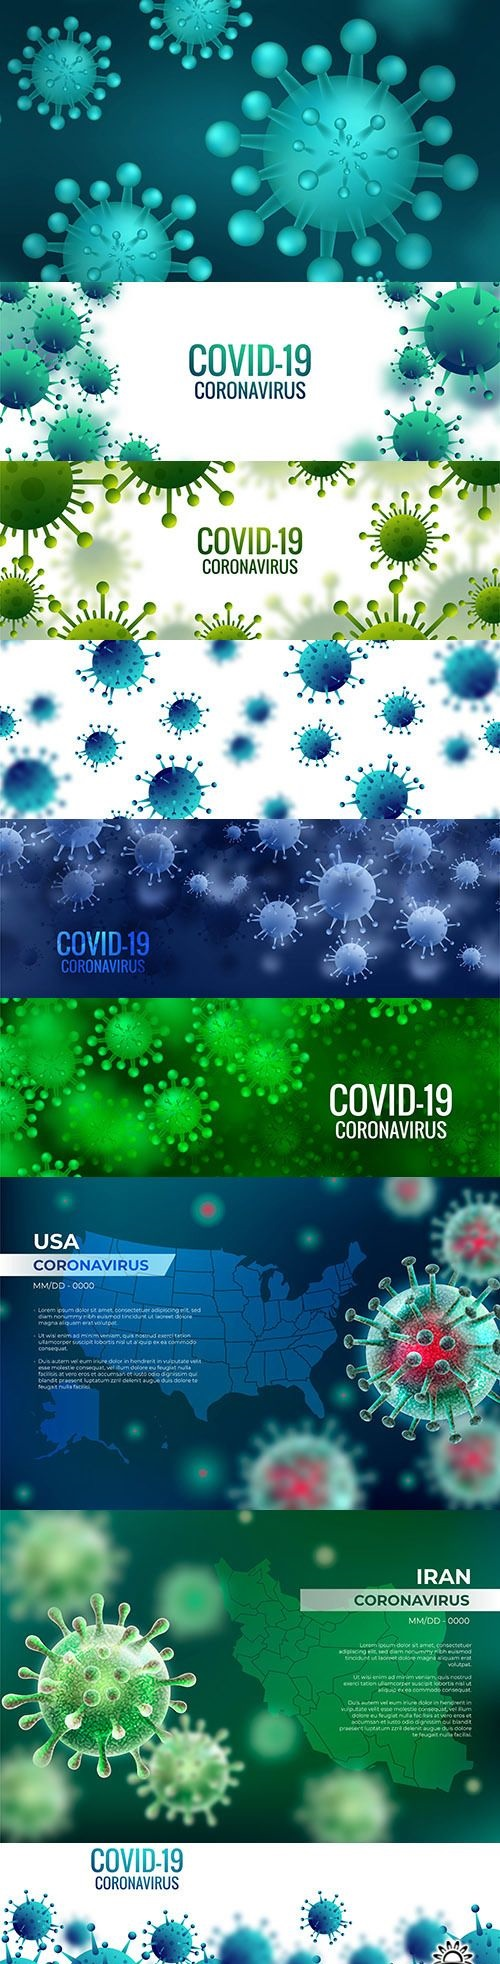 Coronavirus cell banner and realistic background with map